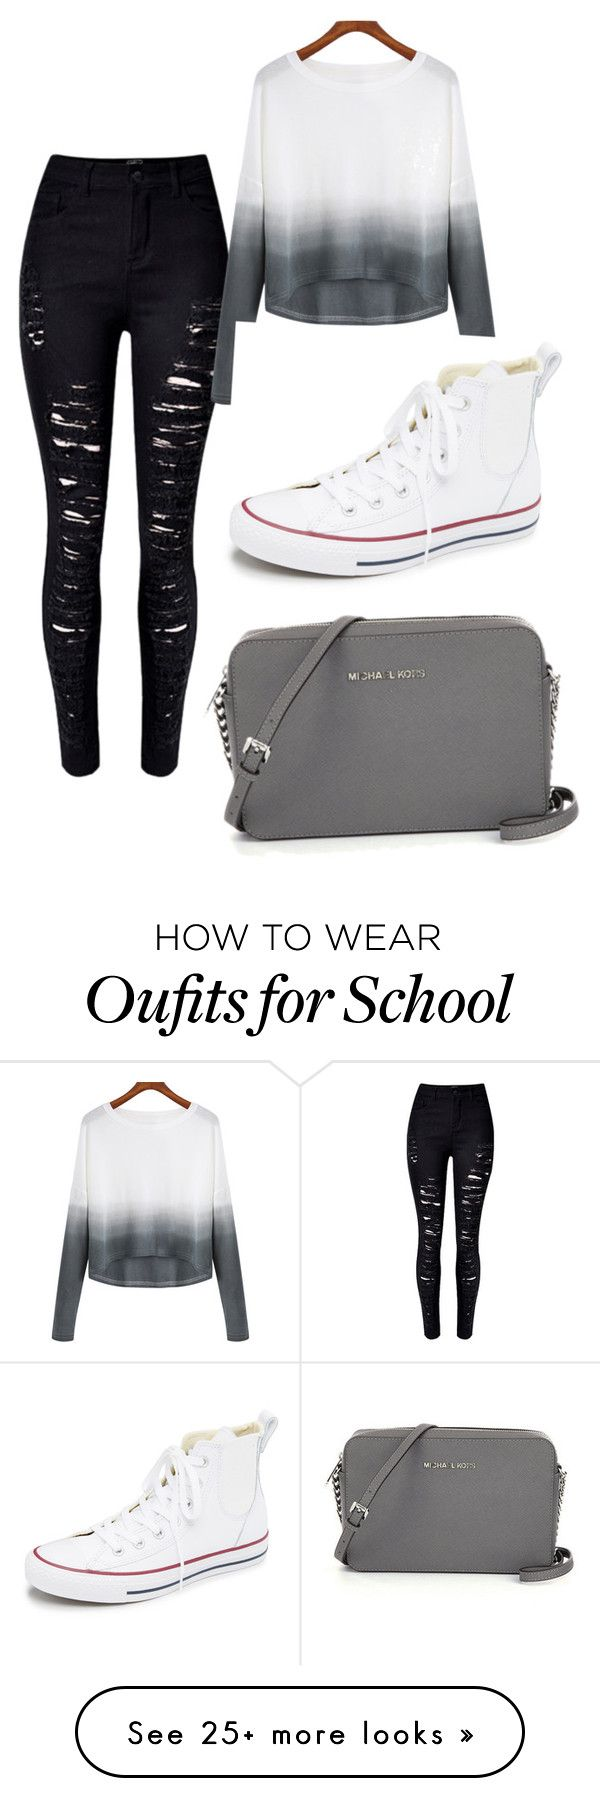 """classic school outfit"" by ablanco2556 on Polyvore featuring Converse, women's clothing, women's fashion, women, female, woman, misses and juniors"